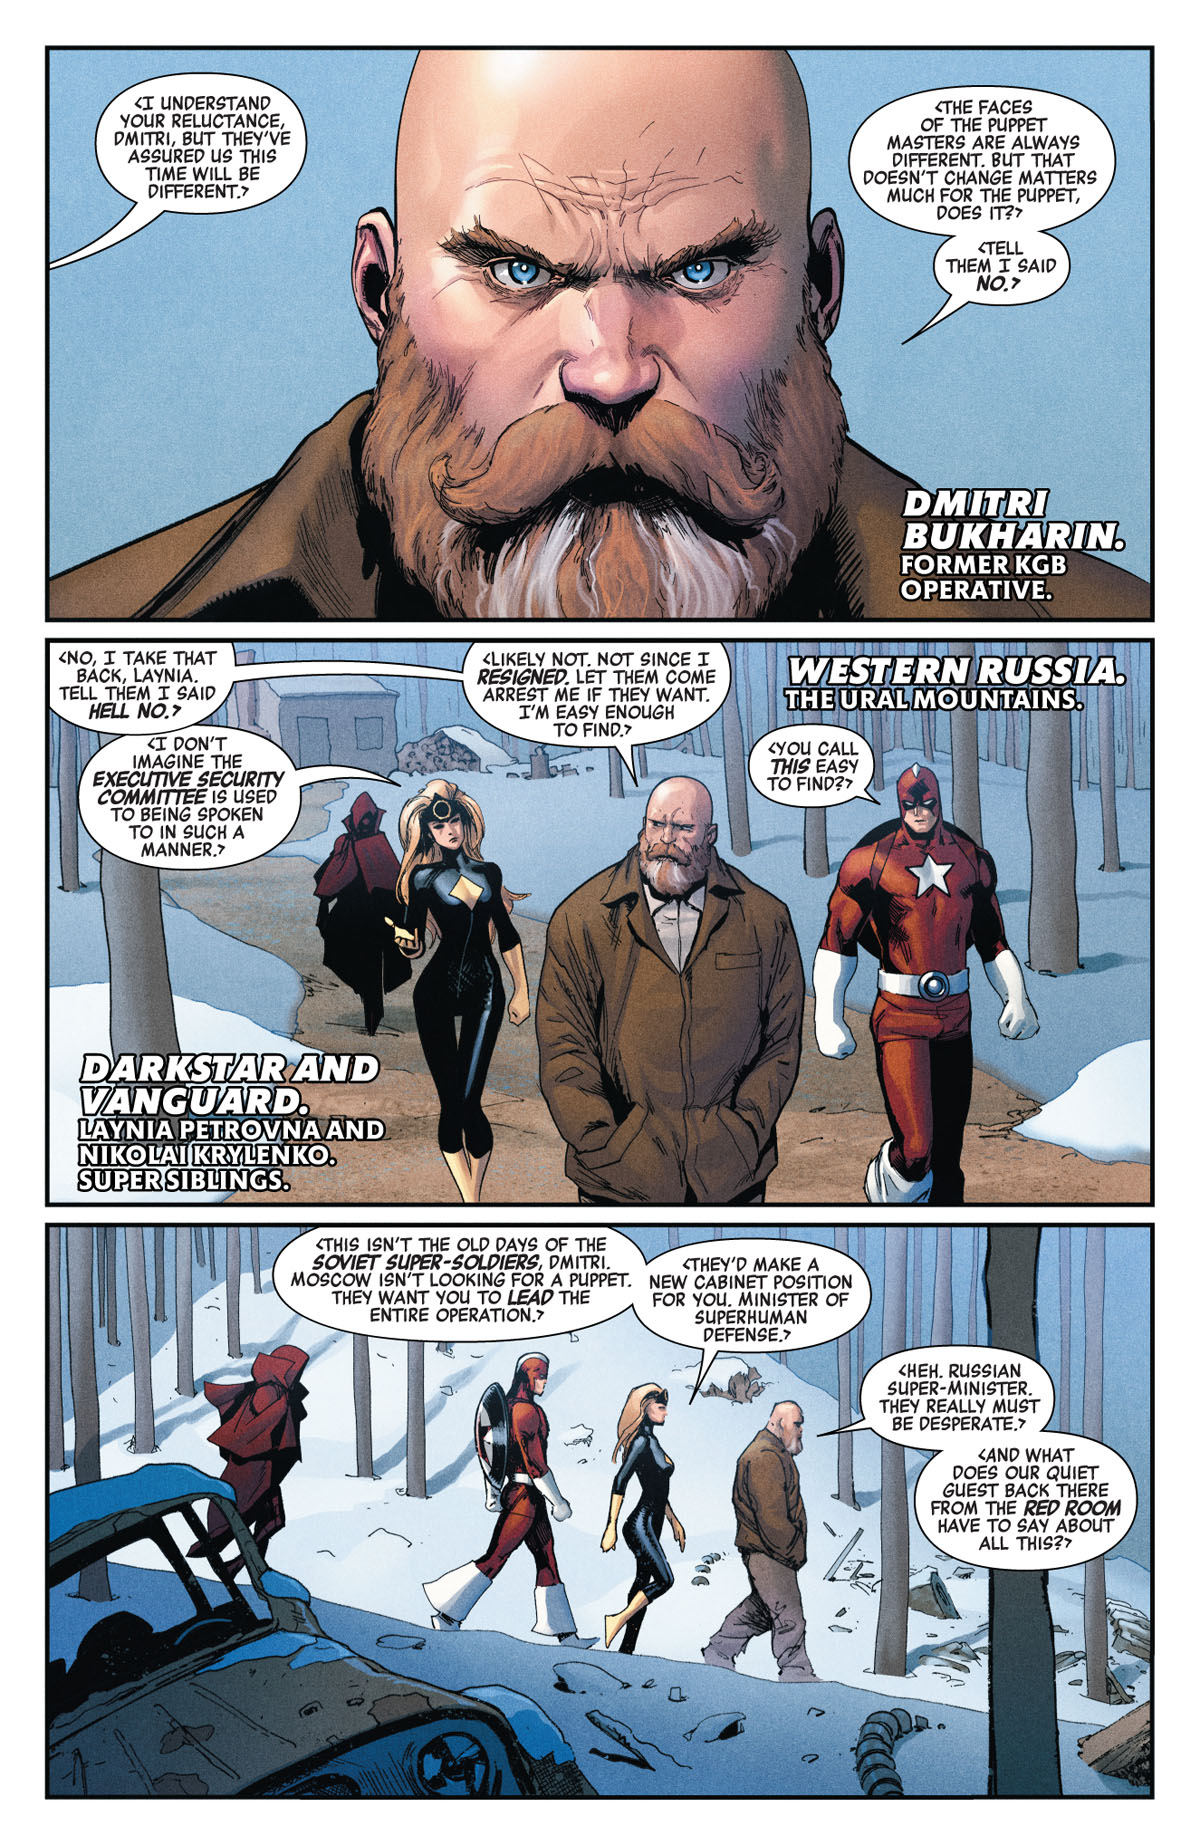 Avengers #10 page 3